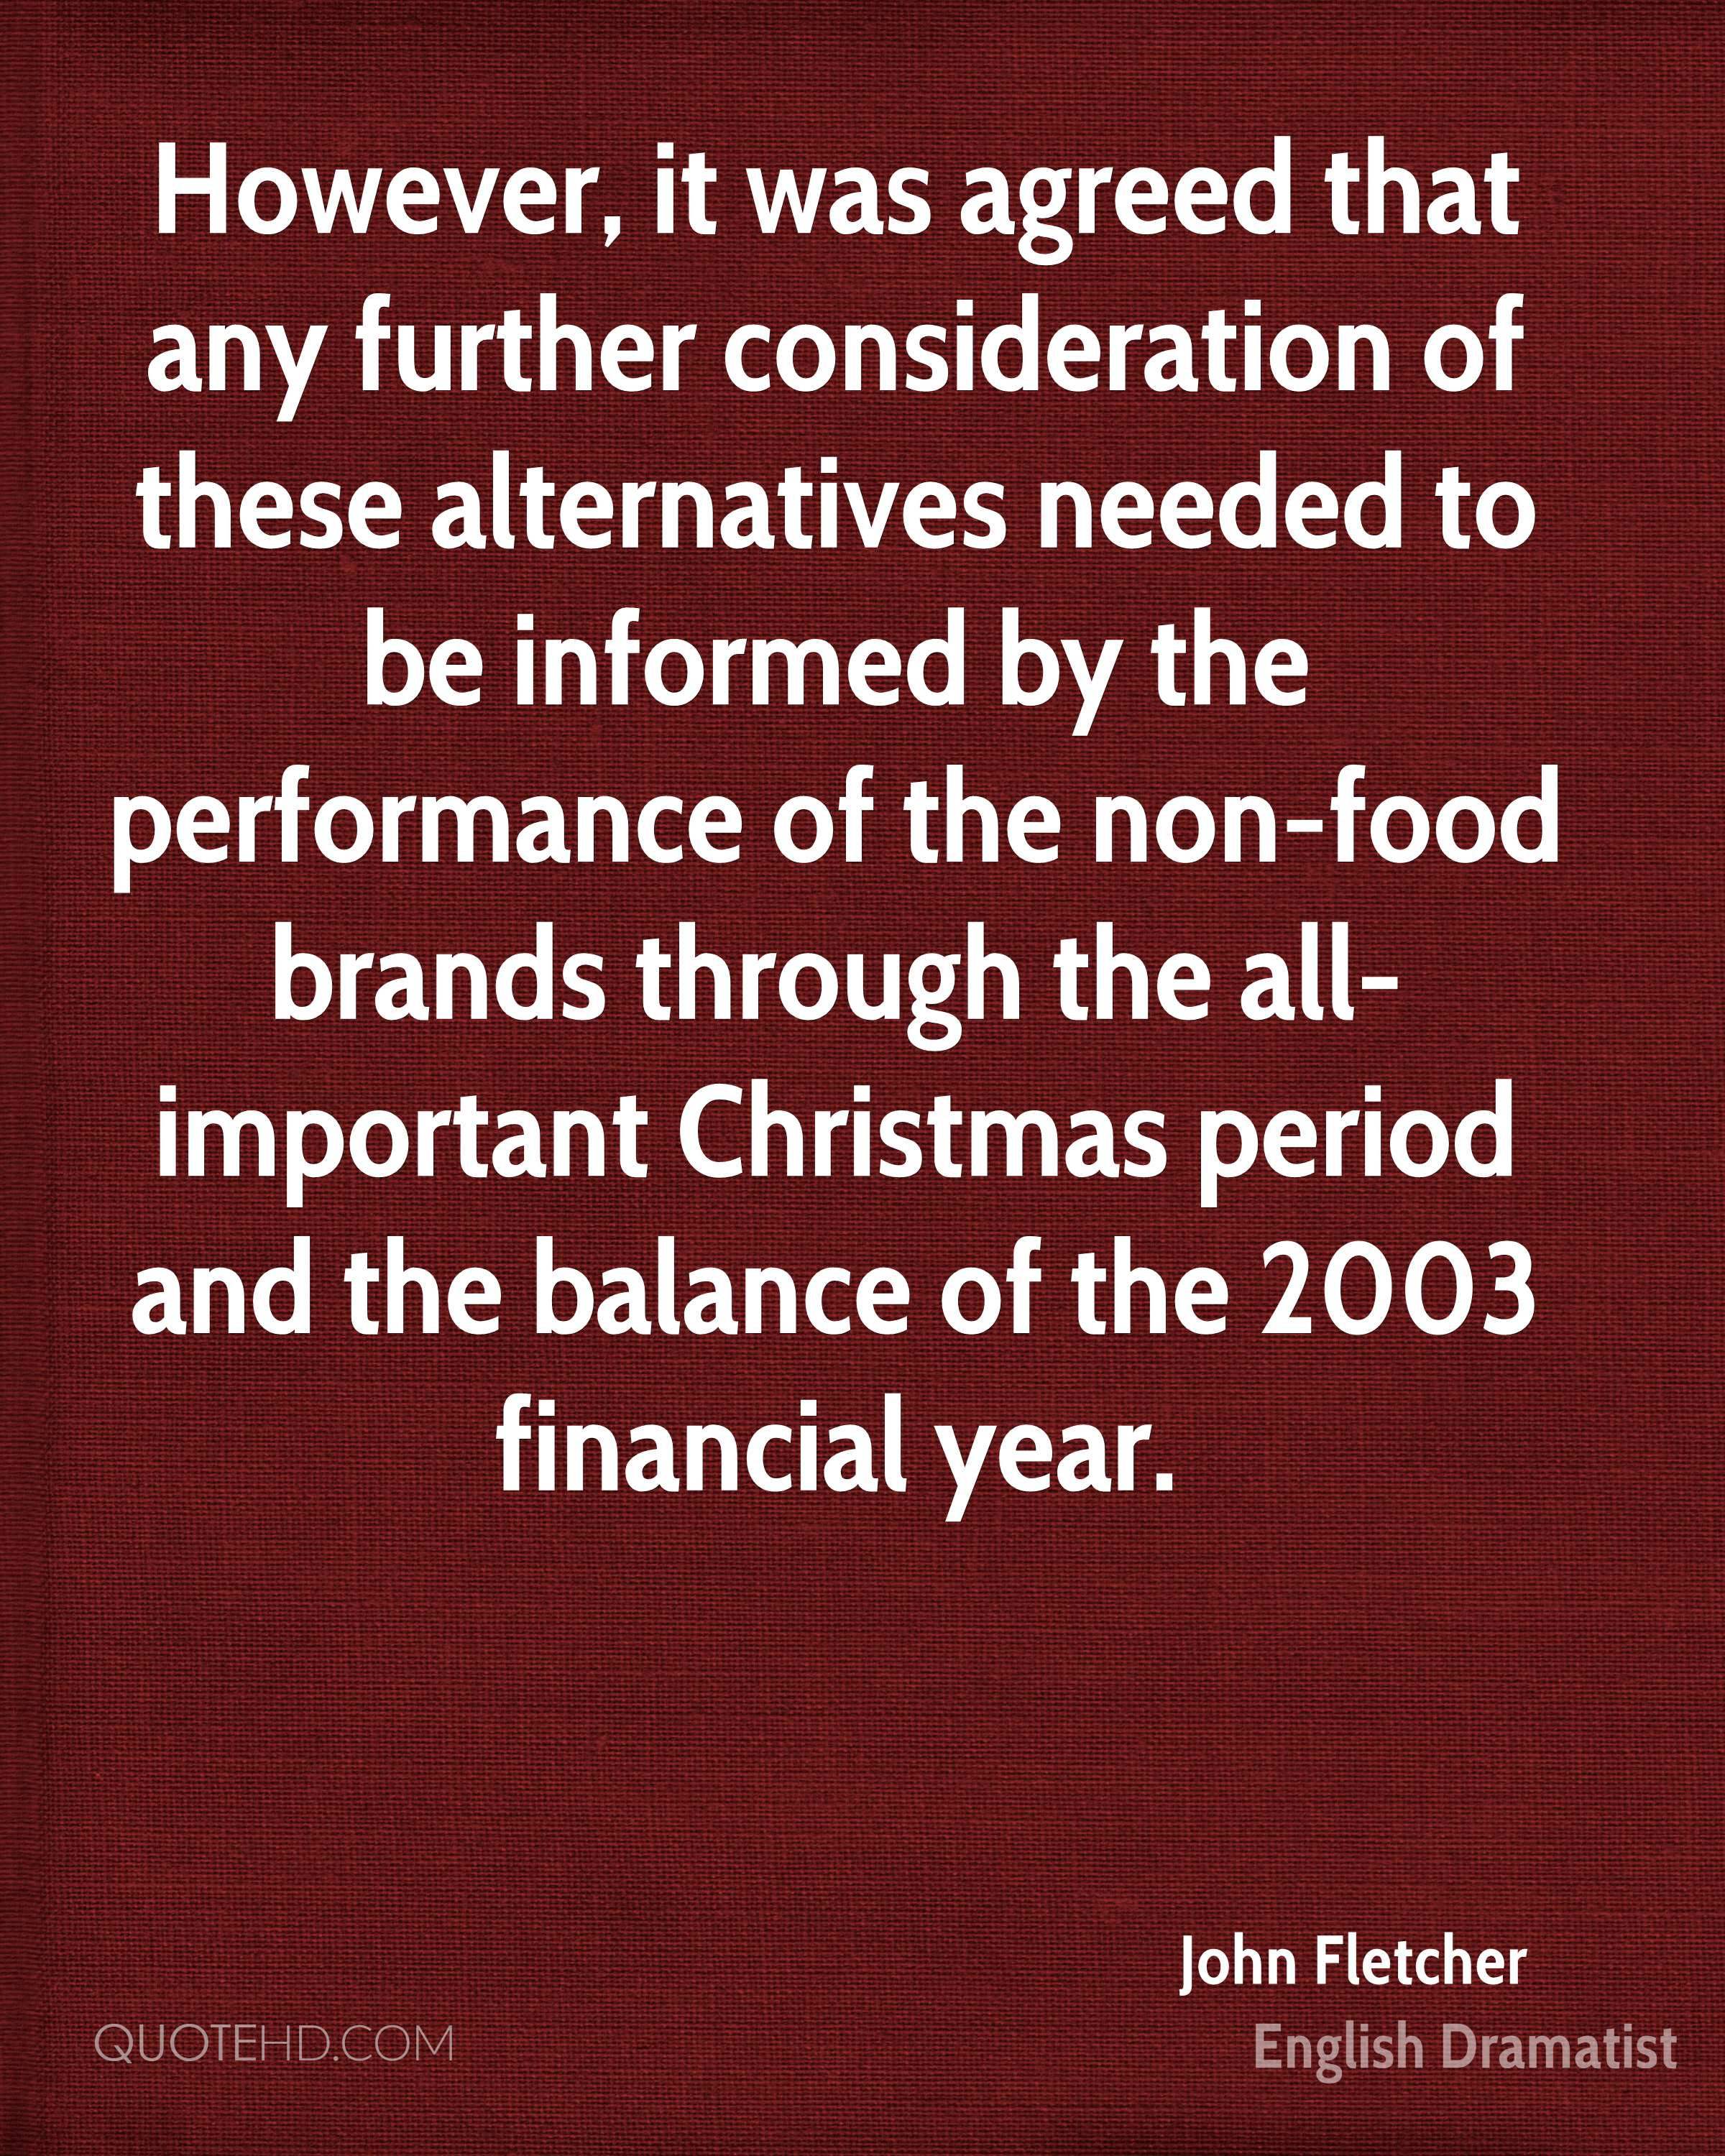 However, it was agreed that any further consideration of these alternatives needed to be informed by the performance of the non-food brands through the all-important Christmas period and the balance of the 2003 financial year.